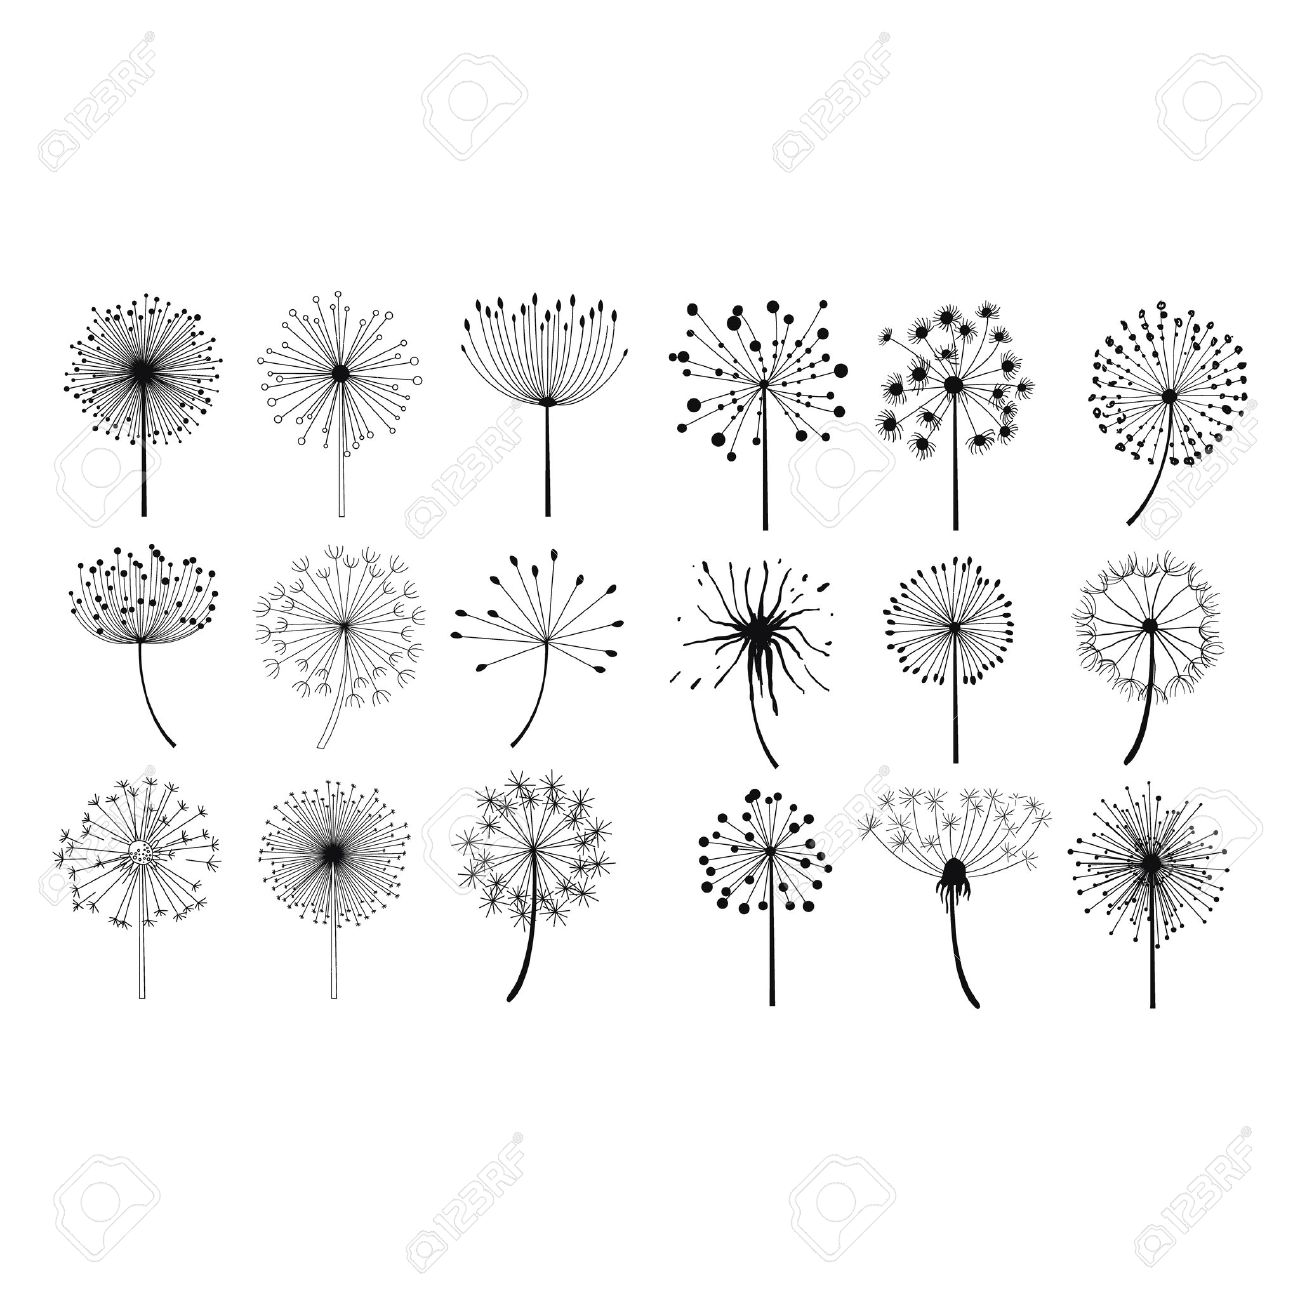 Dandelion Fluffy Seeds Flowers Hand Drawn Doodle Style Black And White Drawing Vector Icons Set - 55499242